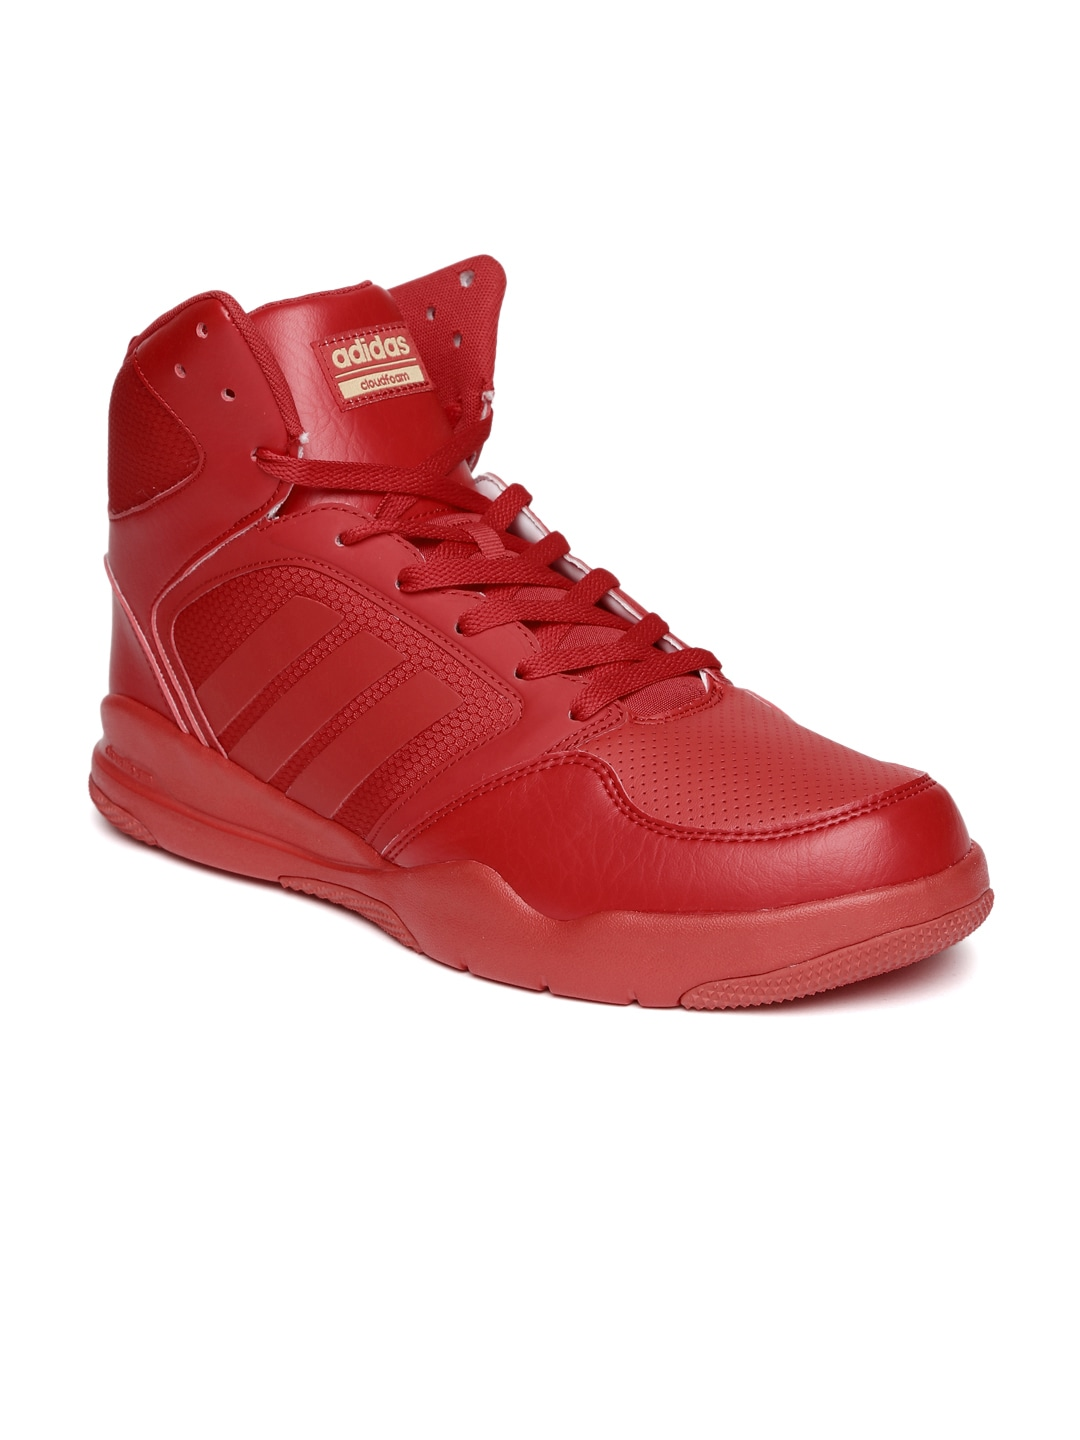 adidas neo men's cloudfoam rewind mid basketball shoes